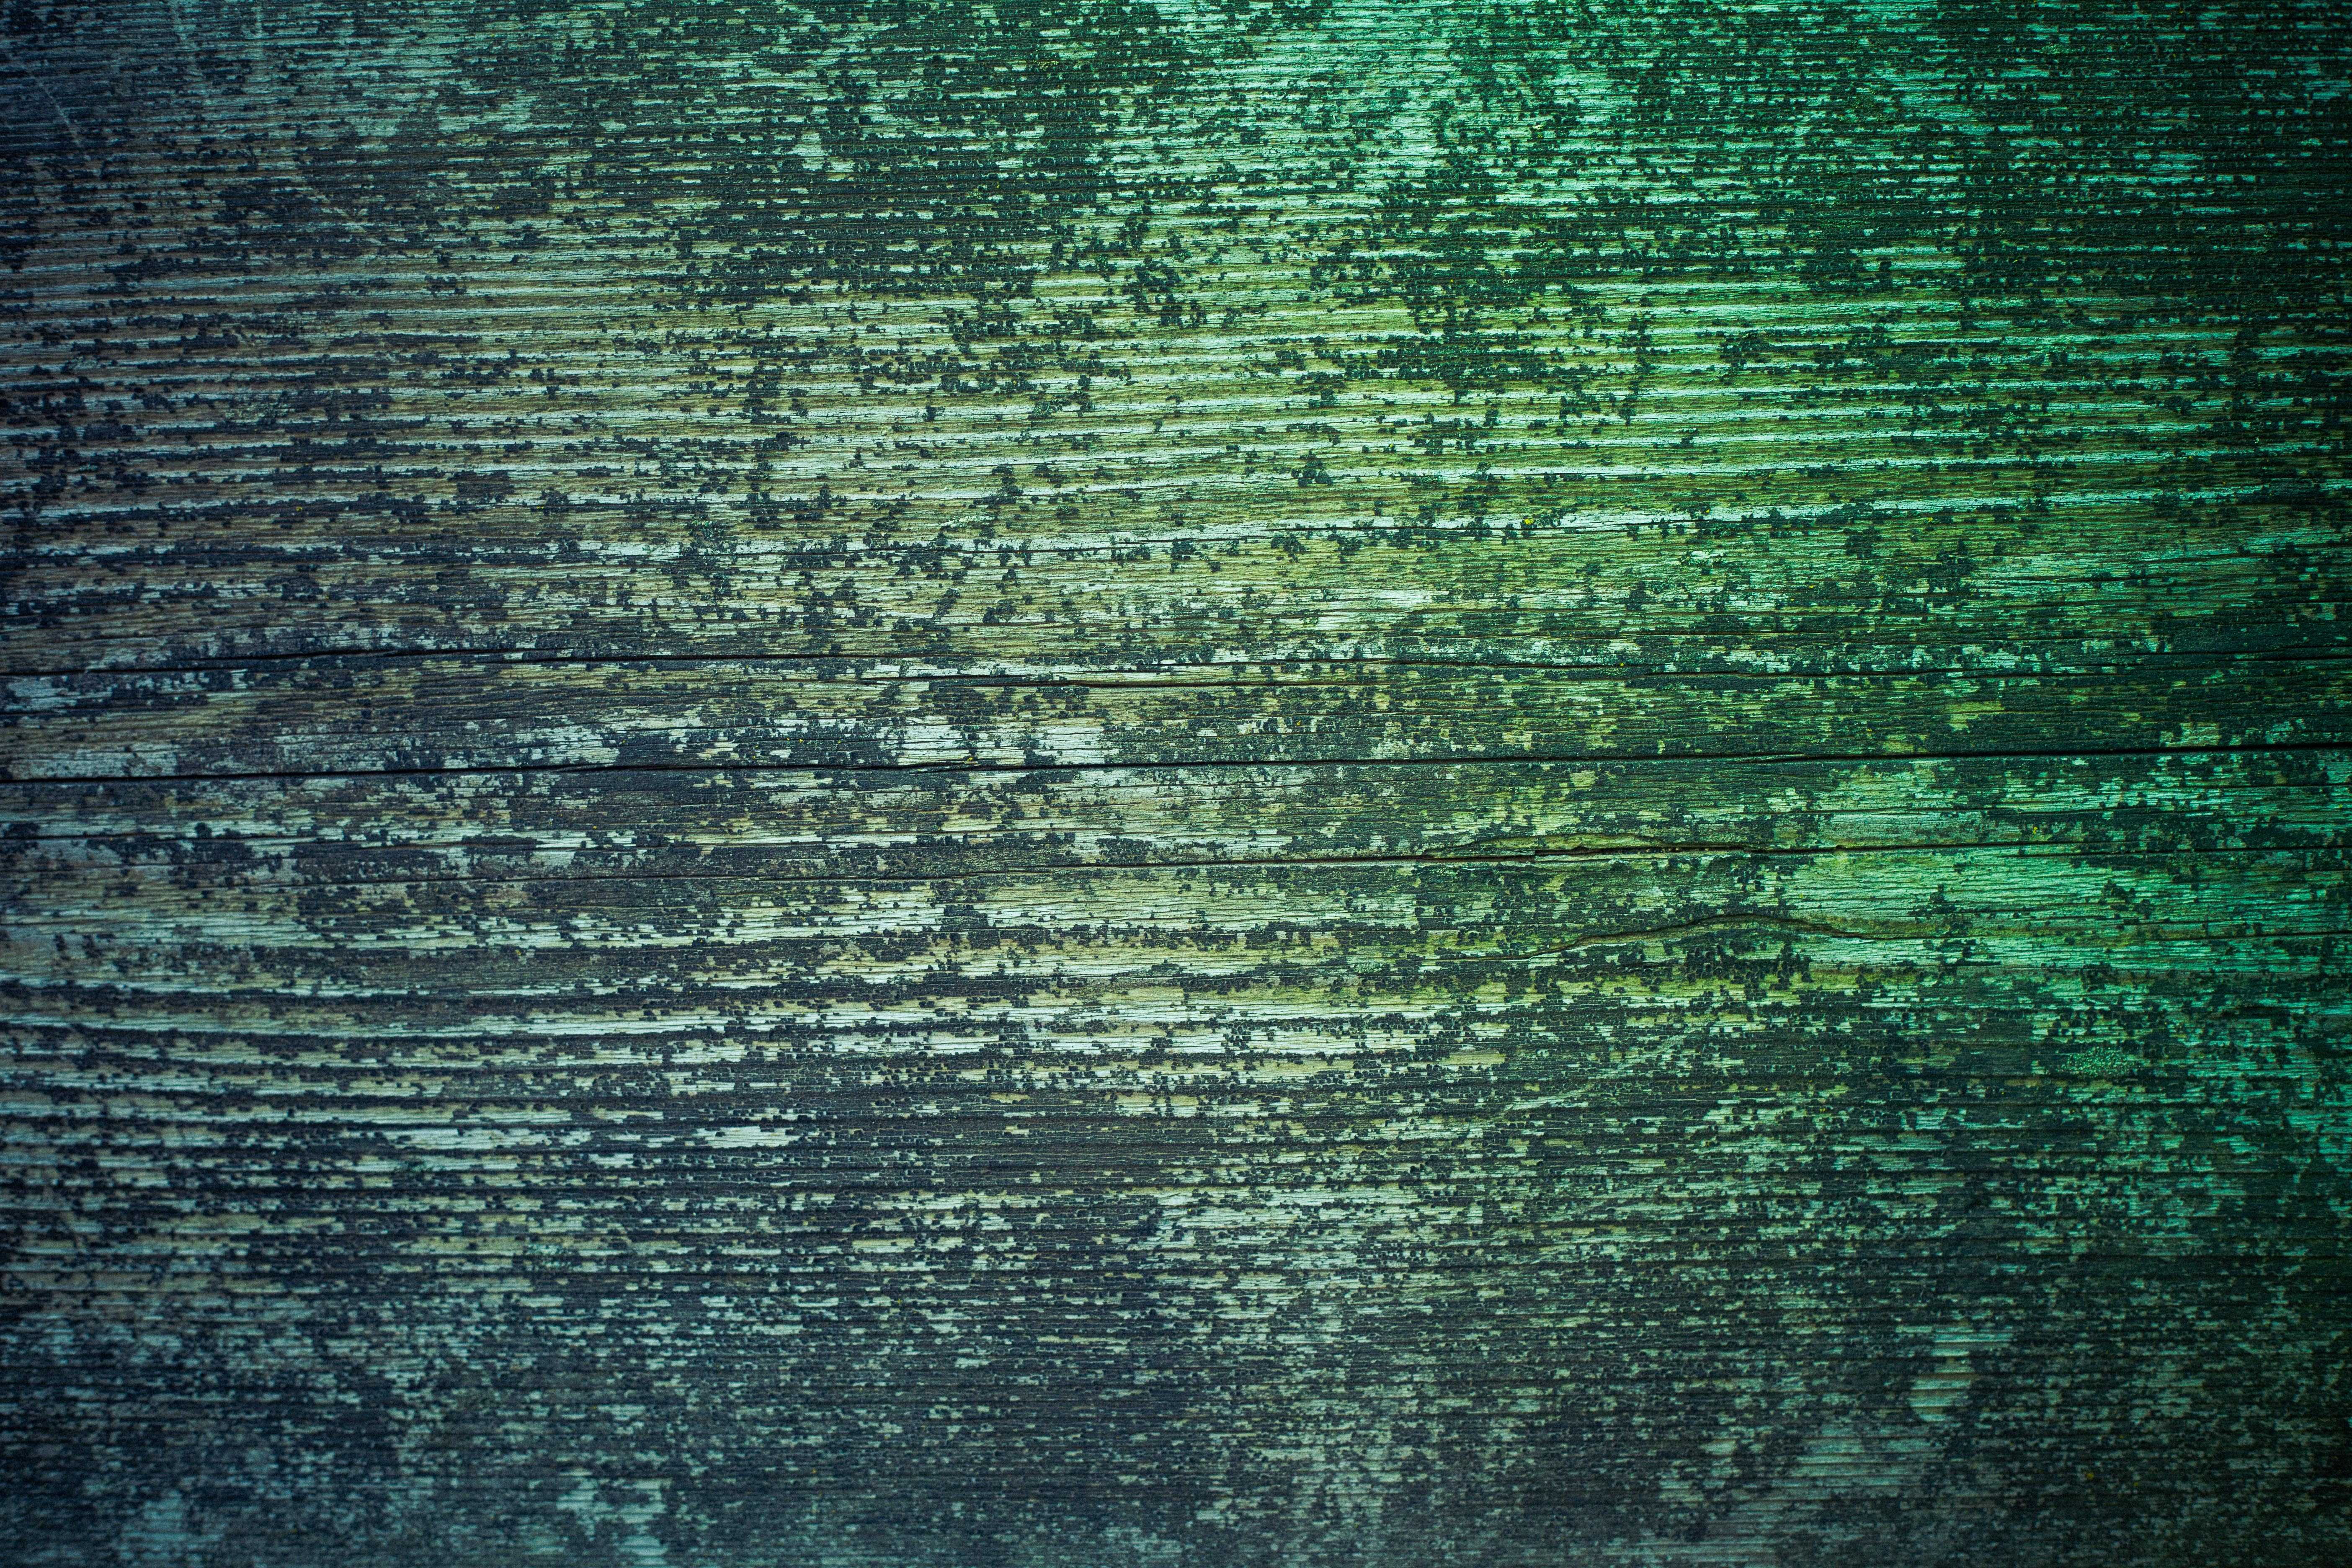 Free Blue Green Grunge Wood Texture | indiedesigner.com - FREE ...